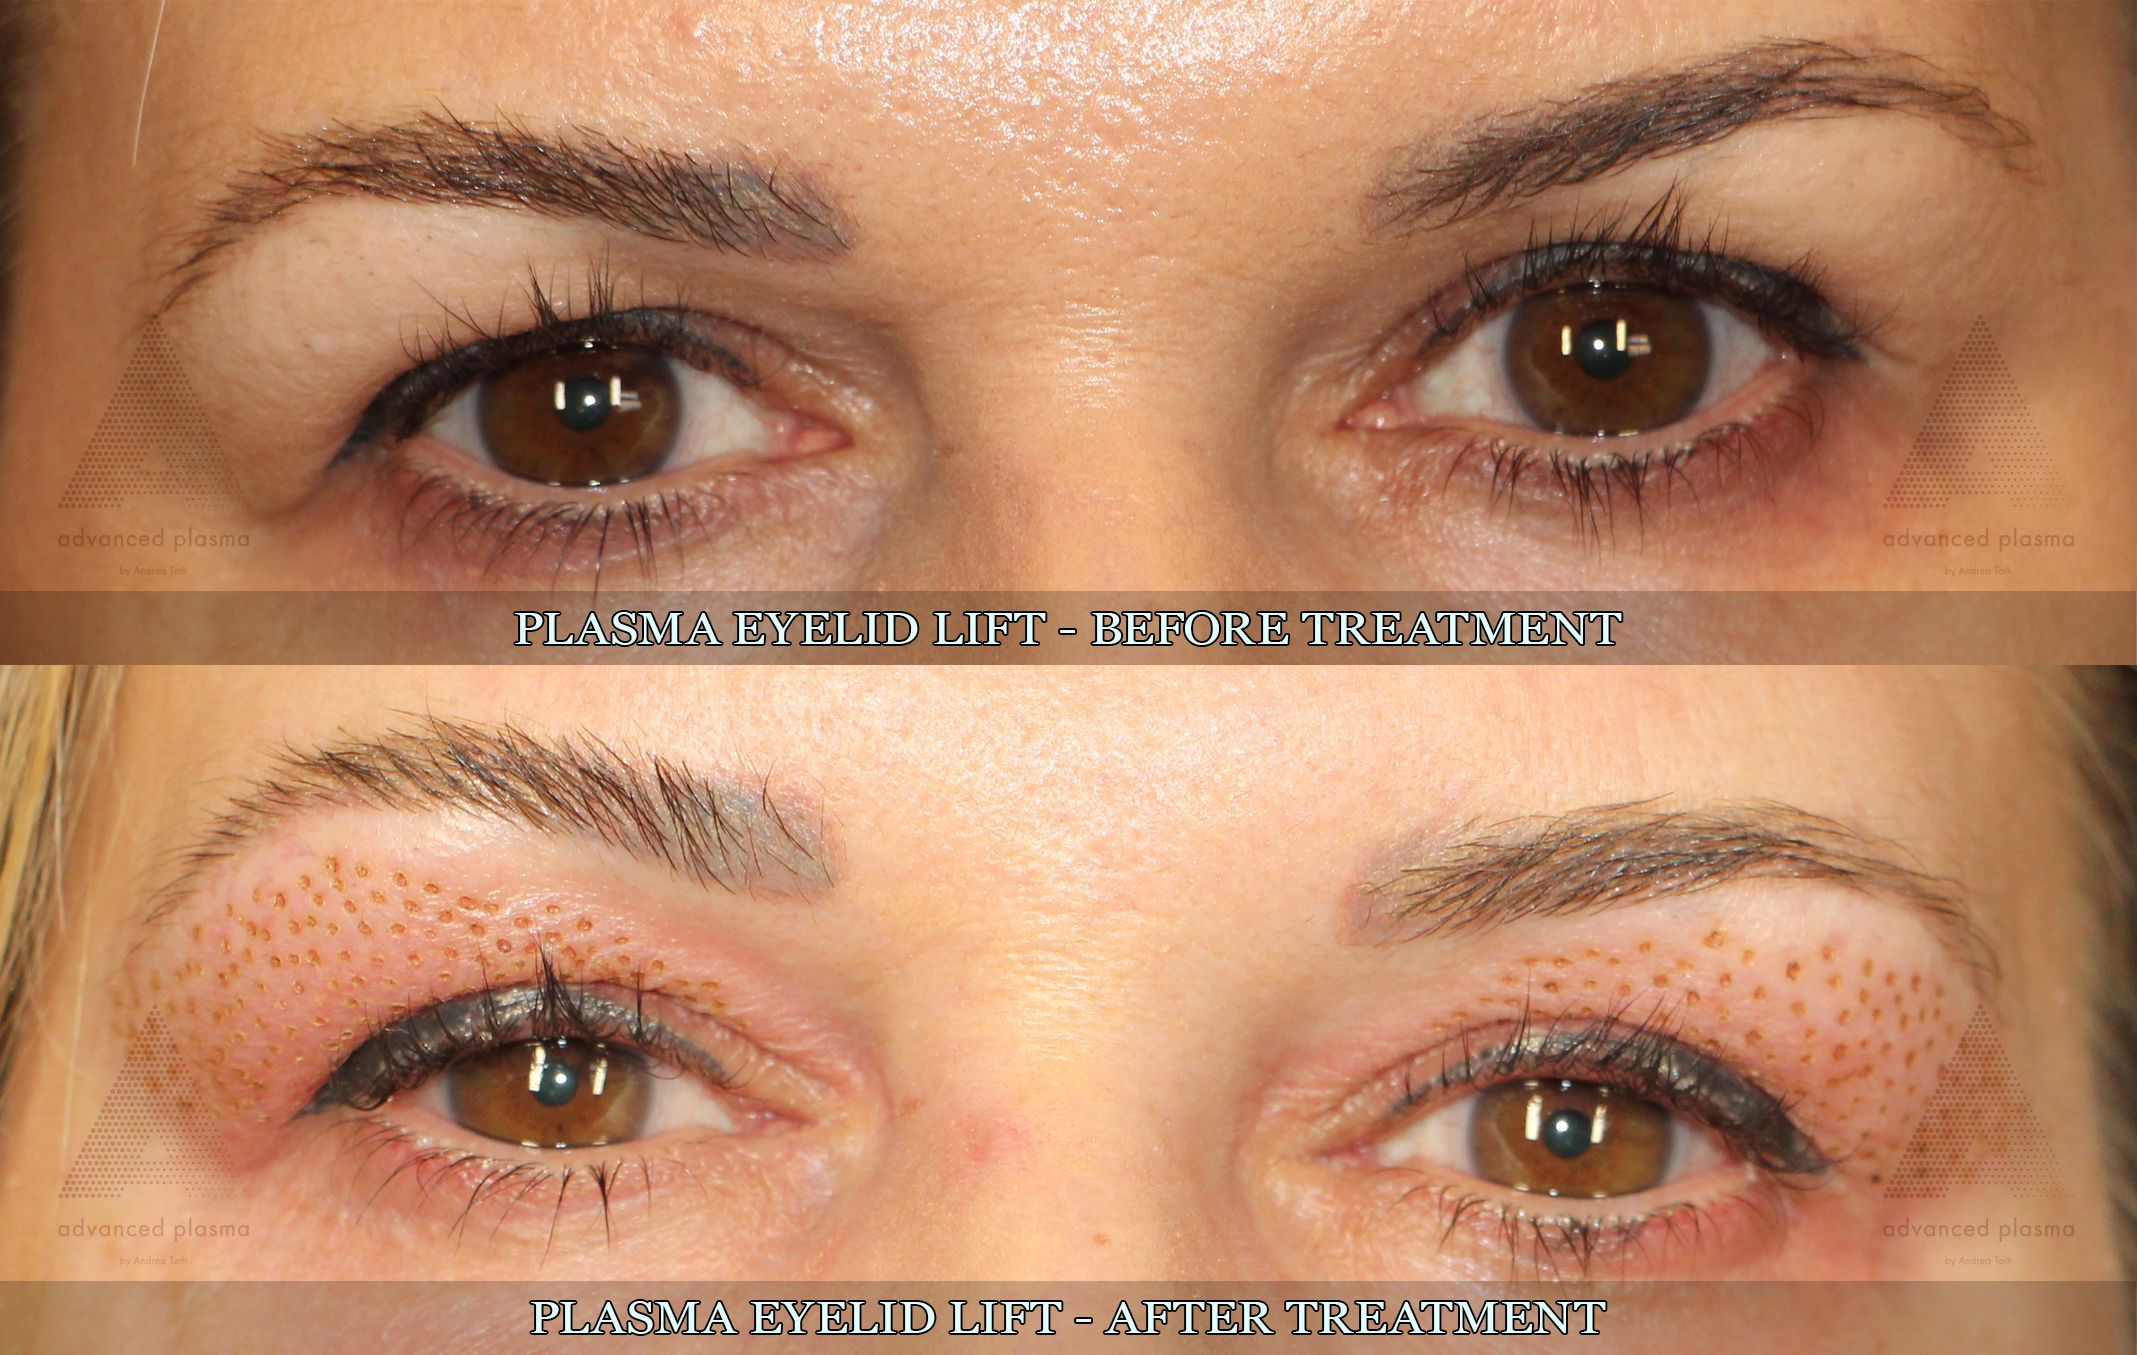 Plasma Eyelid Lift Treatment Non Surgical Skin Tightening